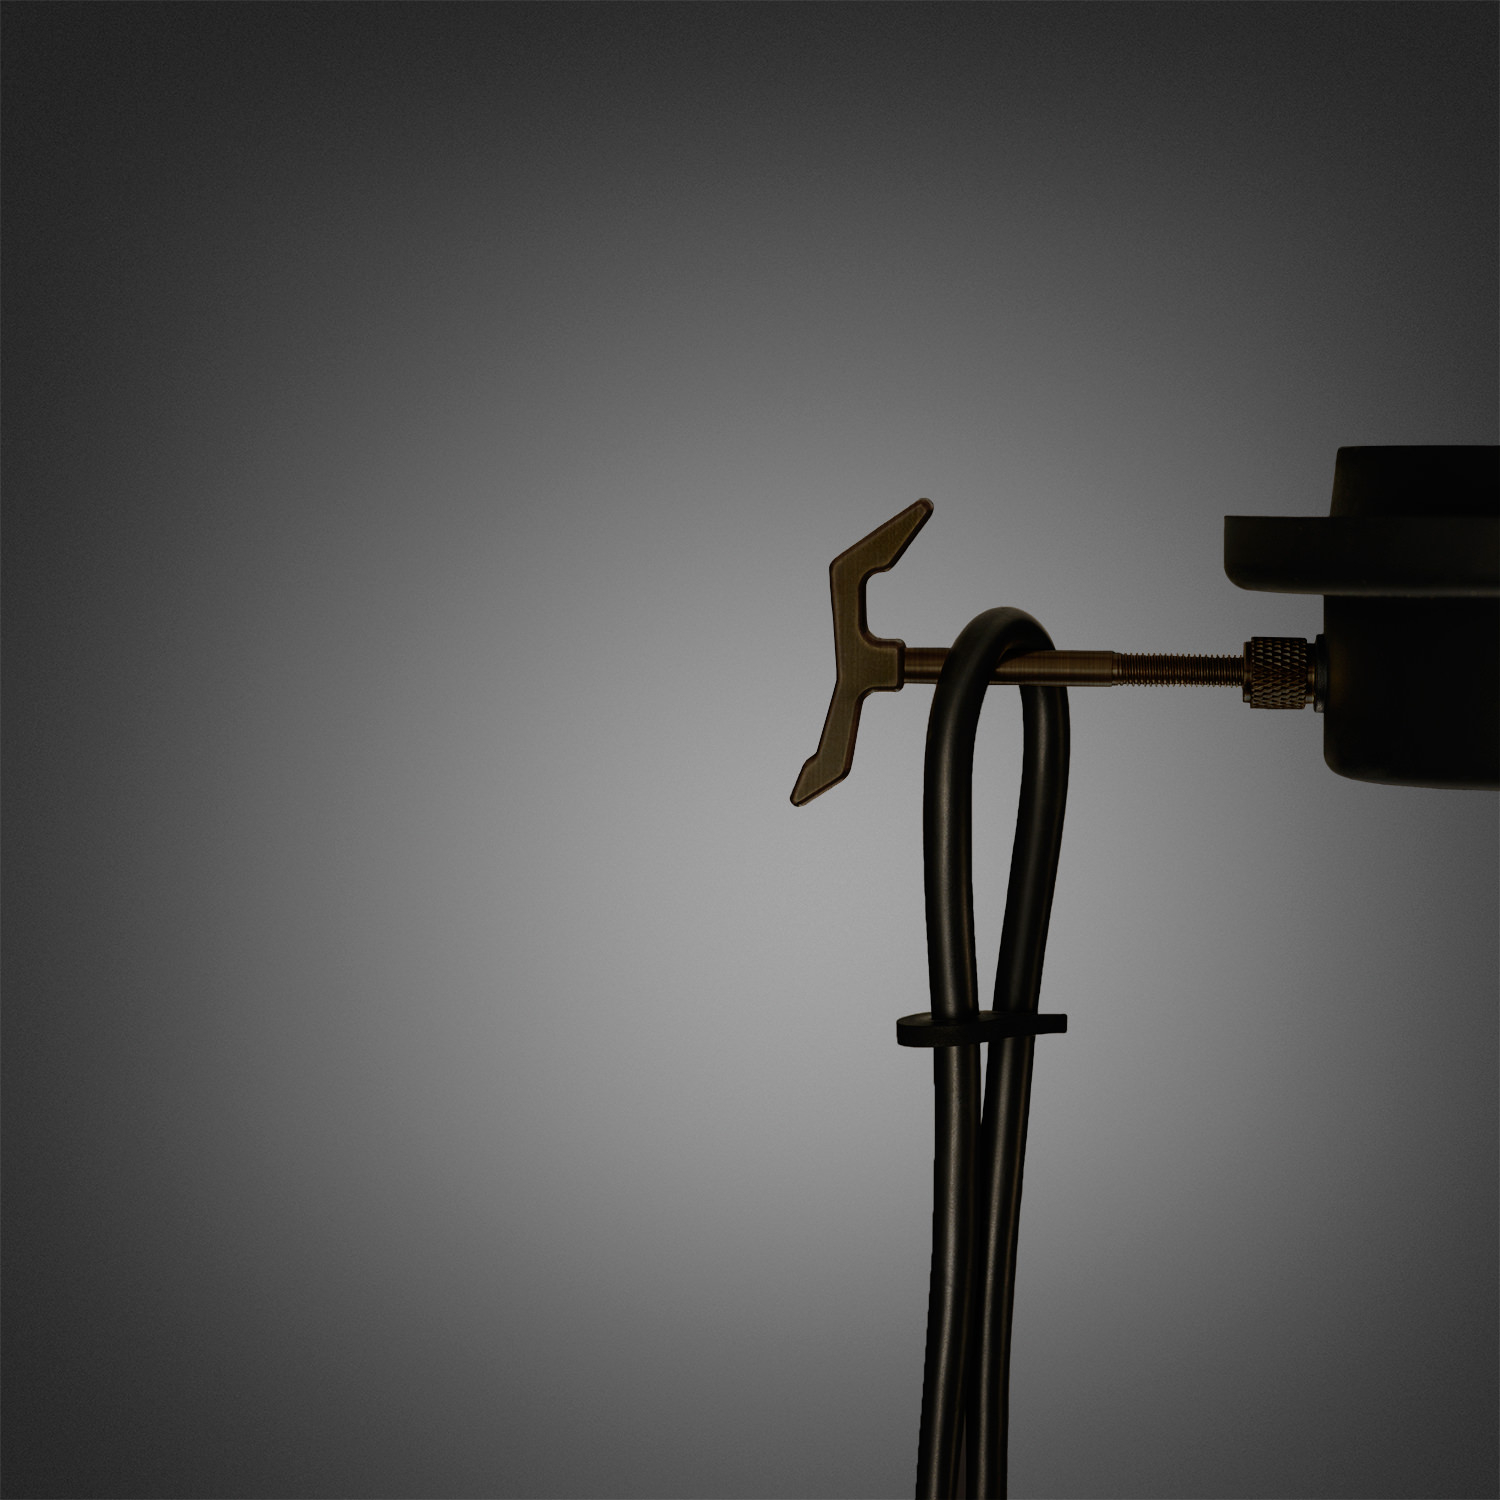 buster-_-punch-hooked-the-smoked-bronze-hook-detail_6